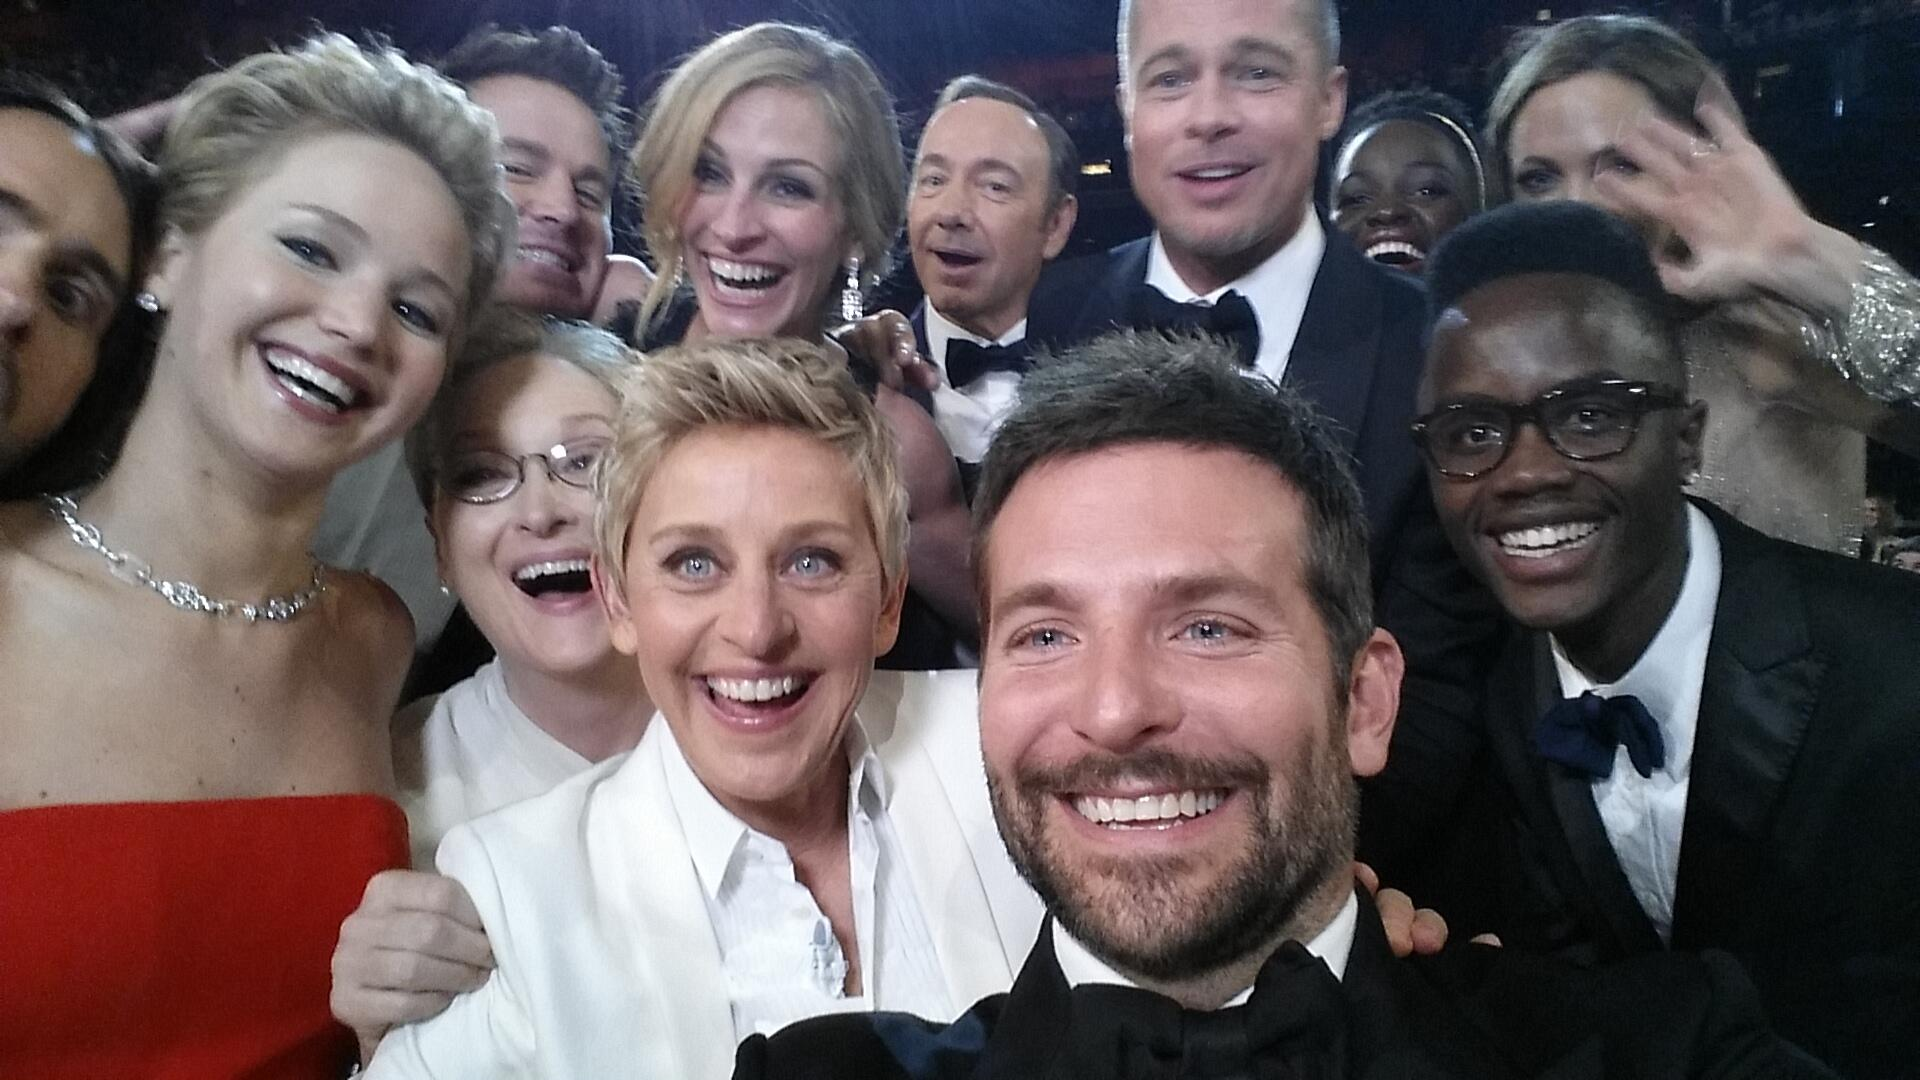 Twitter / TheEllenShow: If only Bradley's arm was longer. ...